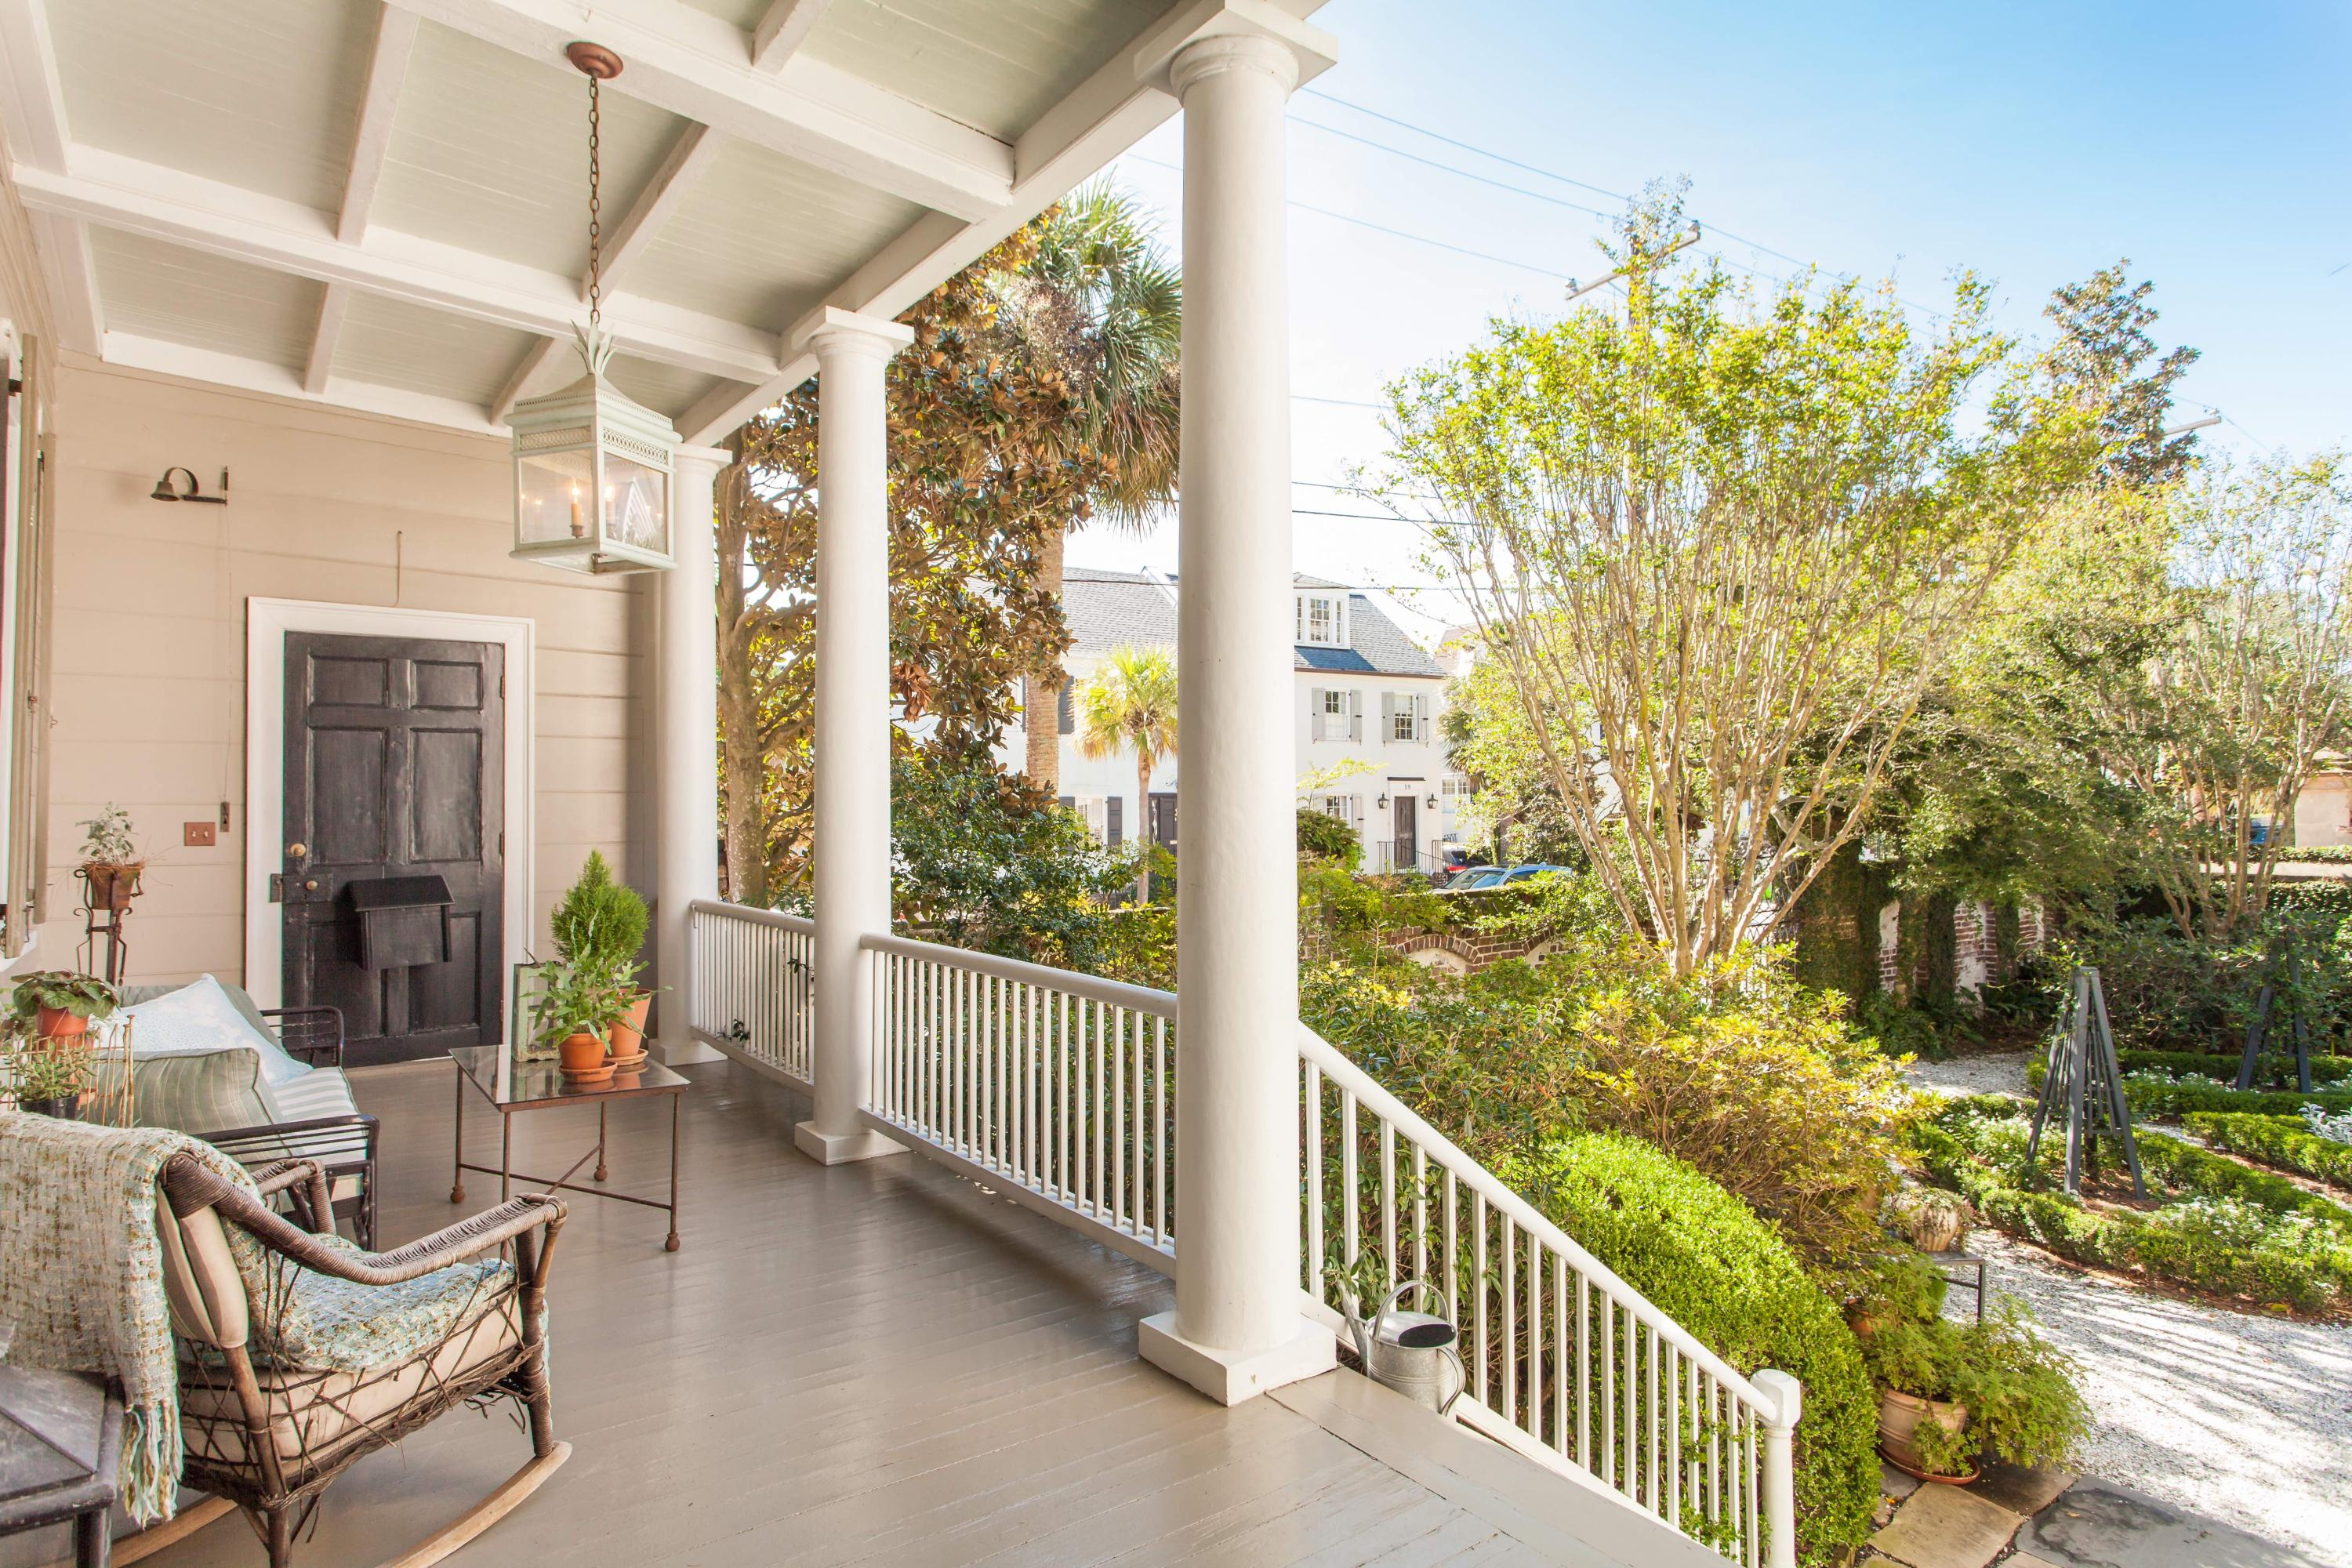 South of Broad Homes For Sale - 58 South Battery, Charleston, SC - 52